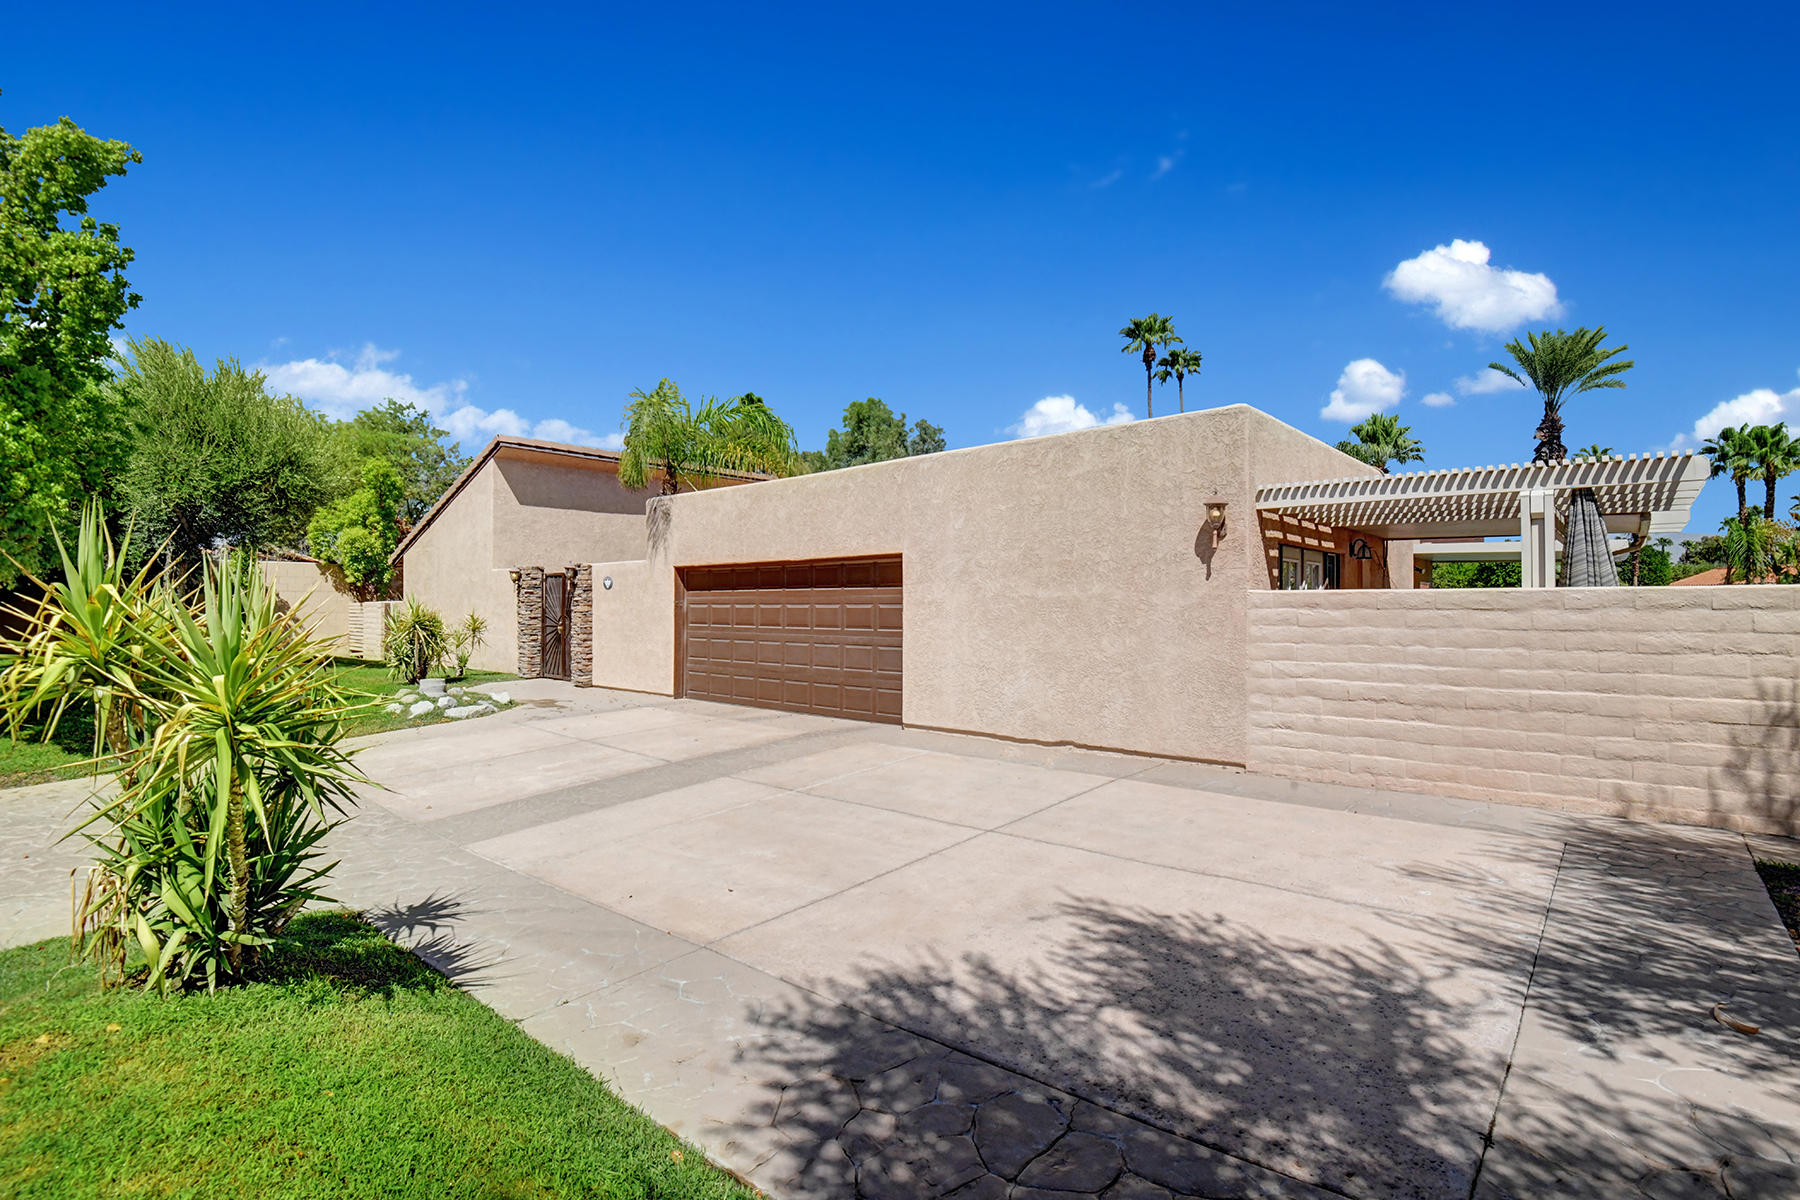 Single Family Homes for Sale at 79480 Fred Waring Drive Bermuda Dunes, California 92203 United States